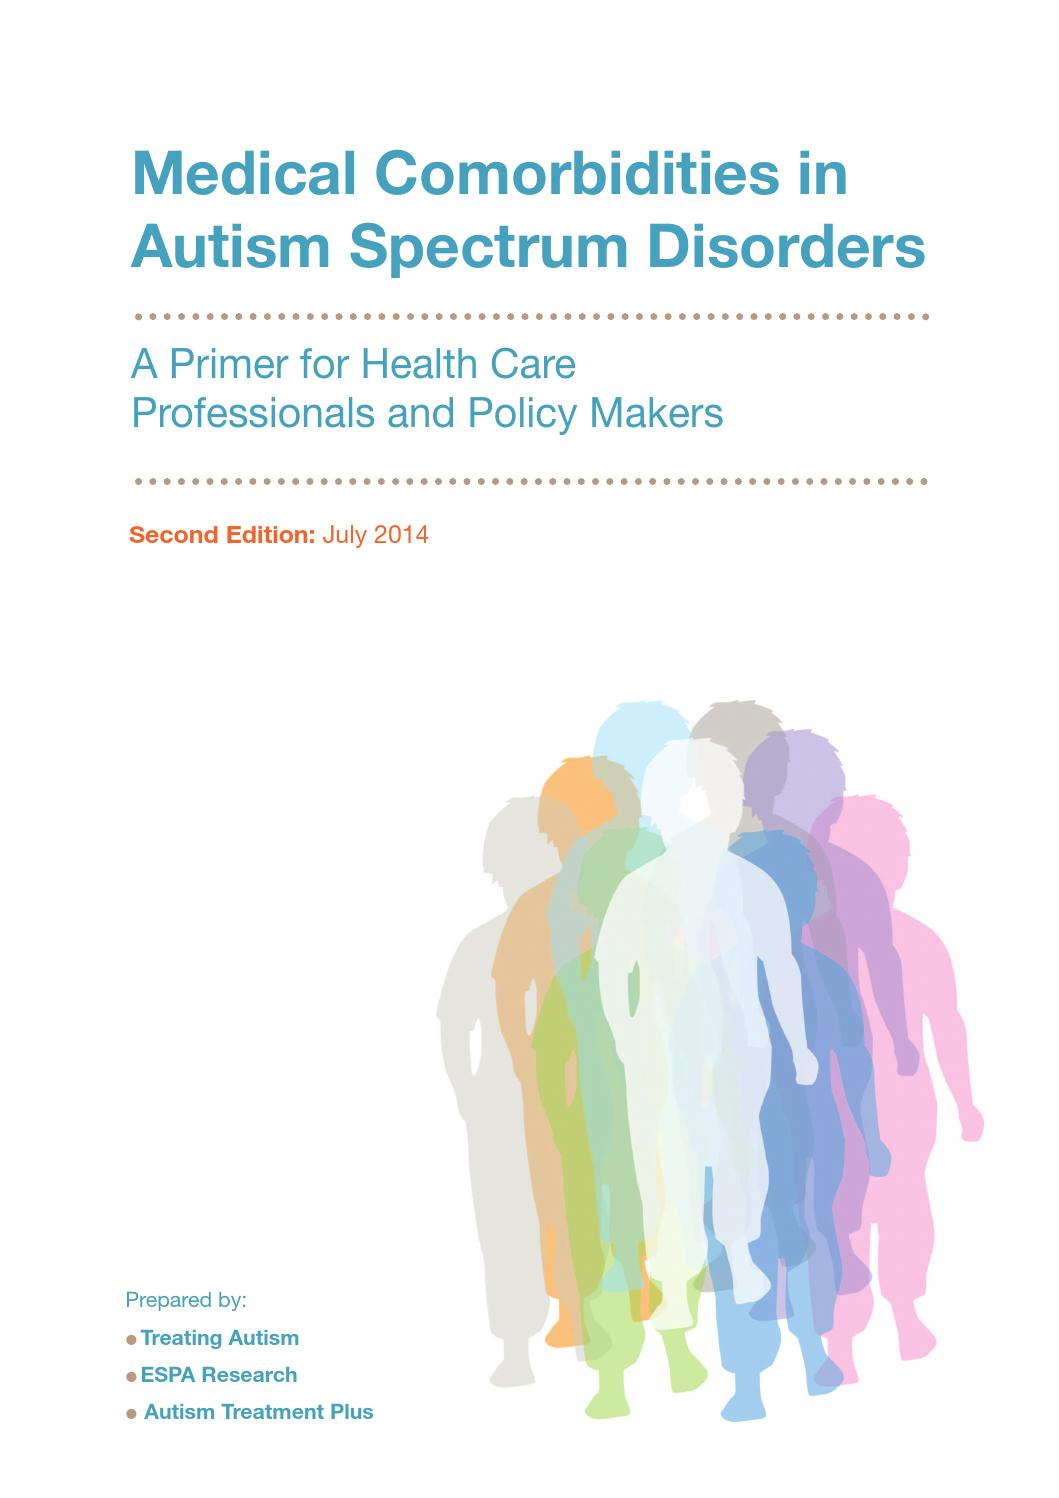 Medical Comorbidities In Autism Spectrum Disorder By